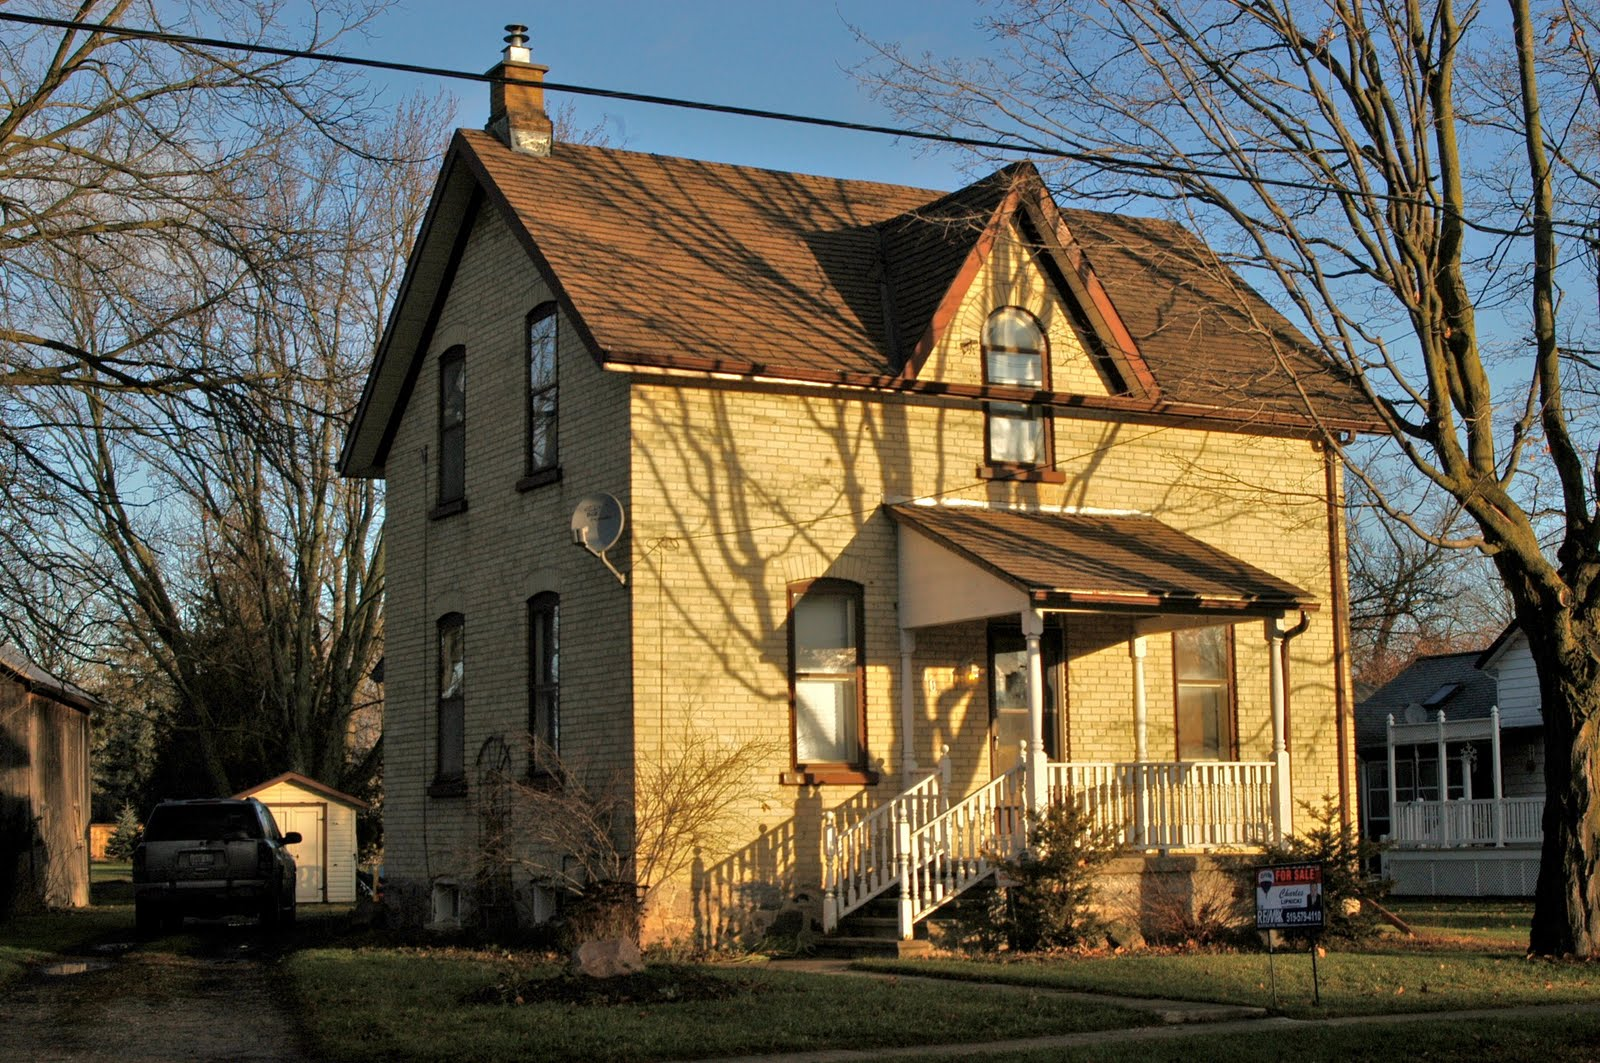 You Could Be The New Owner Of This Simple Yellow Brick Gothic Revival